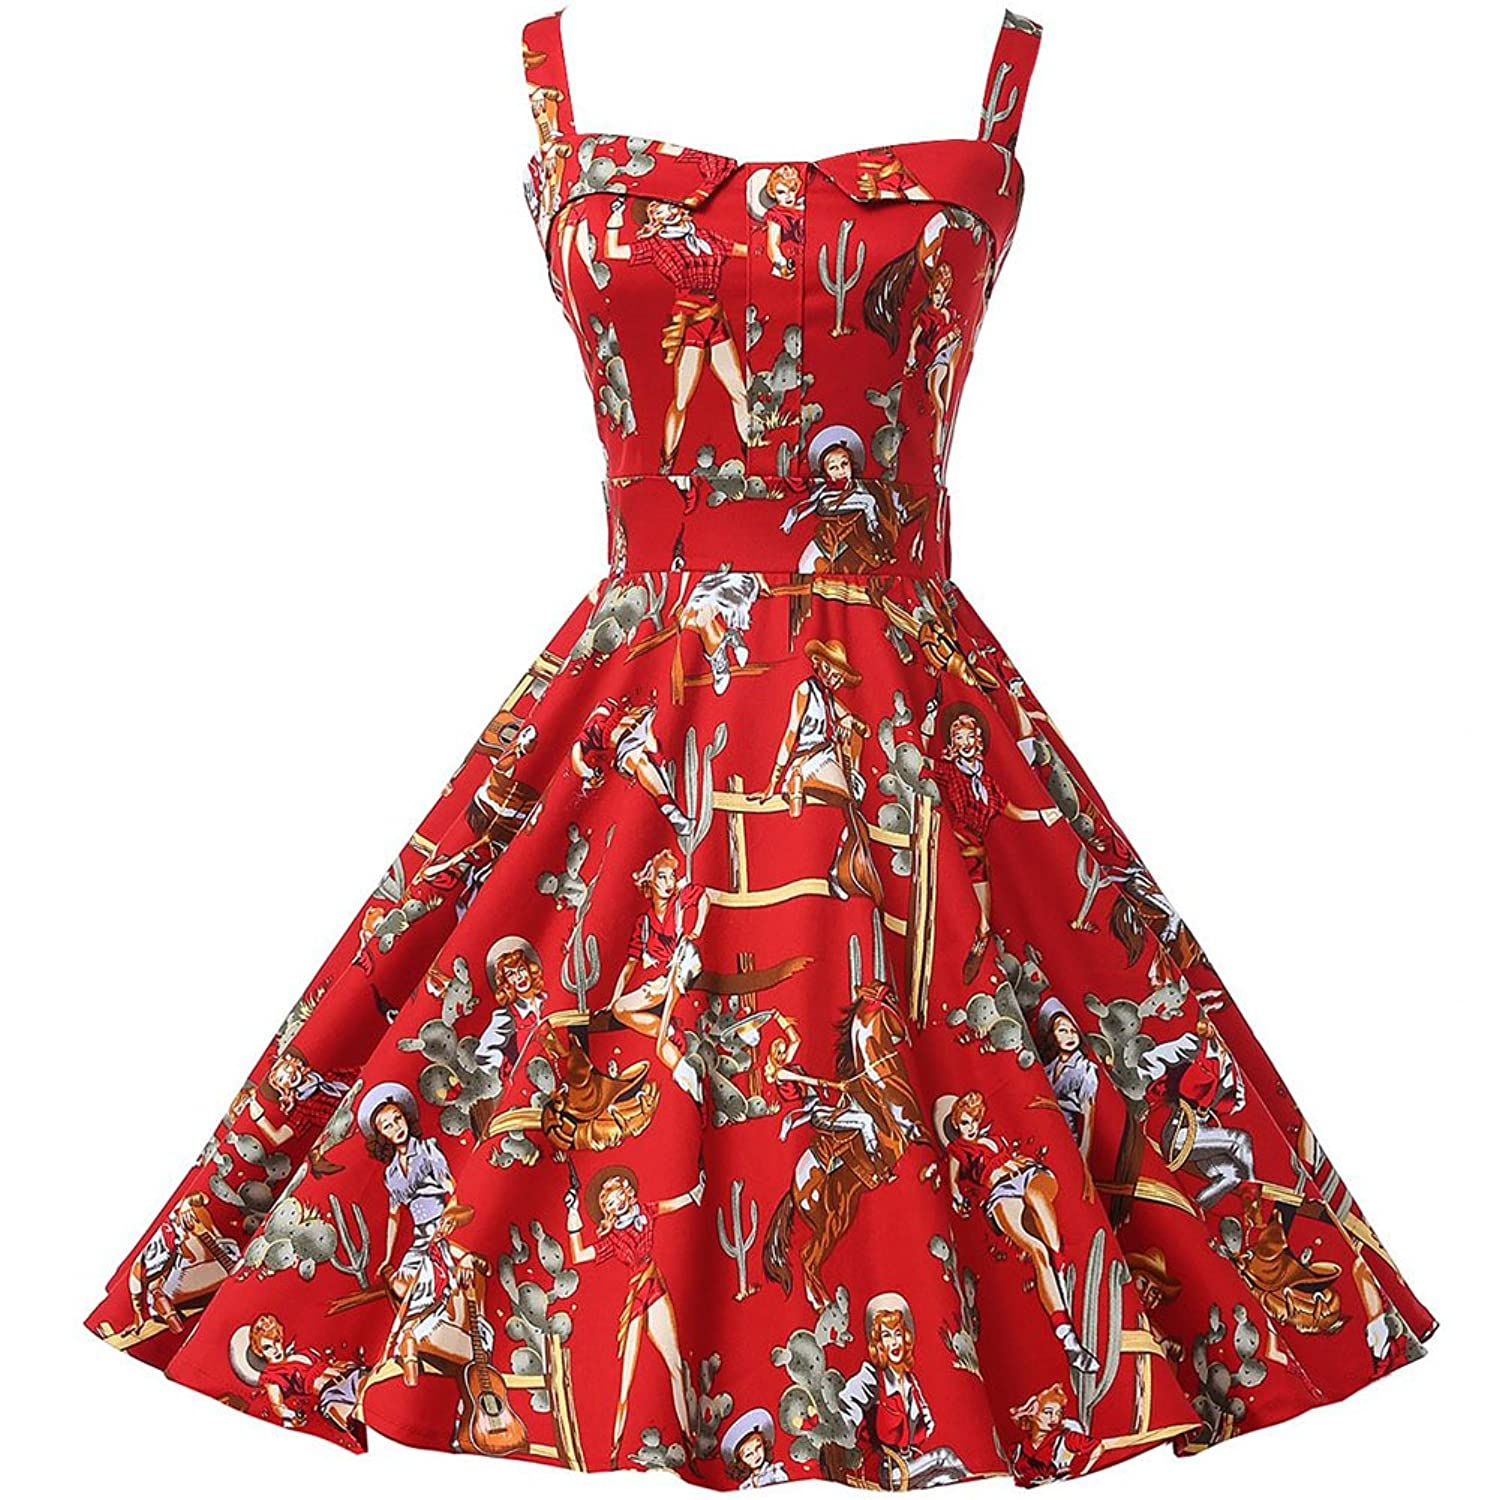 PTU1818 Womens Vintage 1950s Cotton Sleeveless Swing Rockabilly Cocktail Party Dress Red